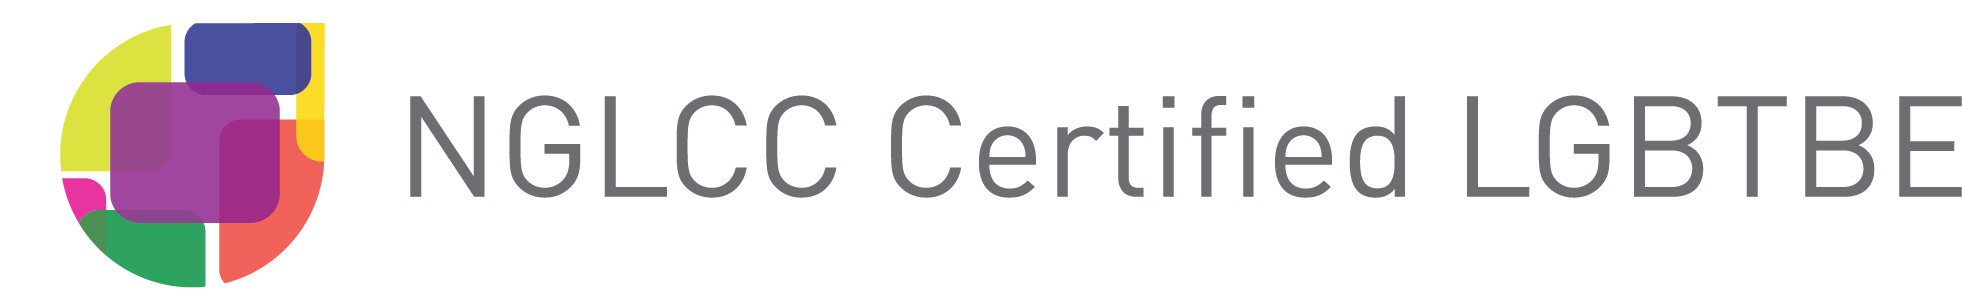 NGLCC Certification